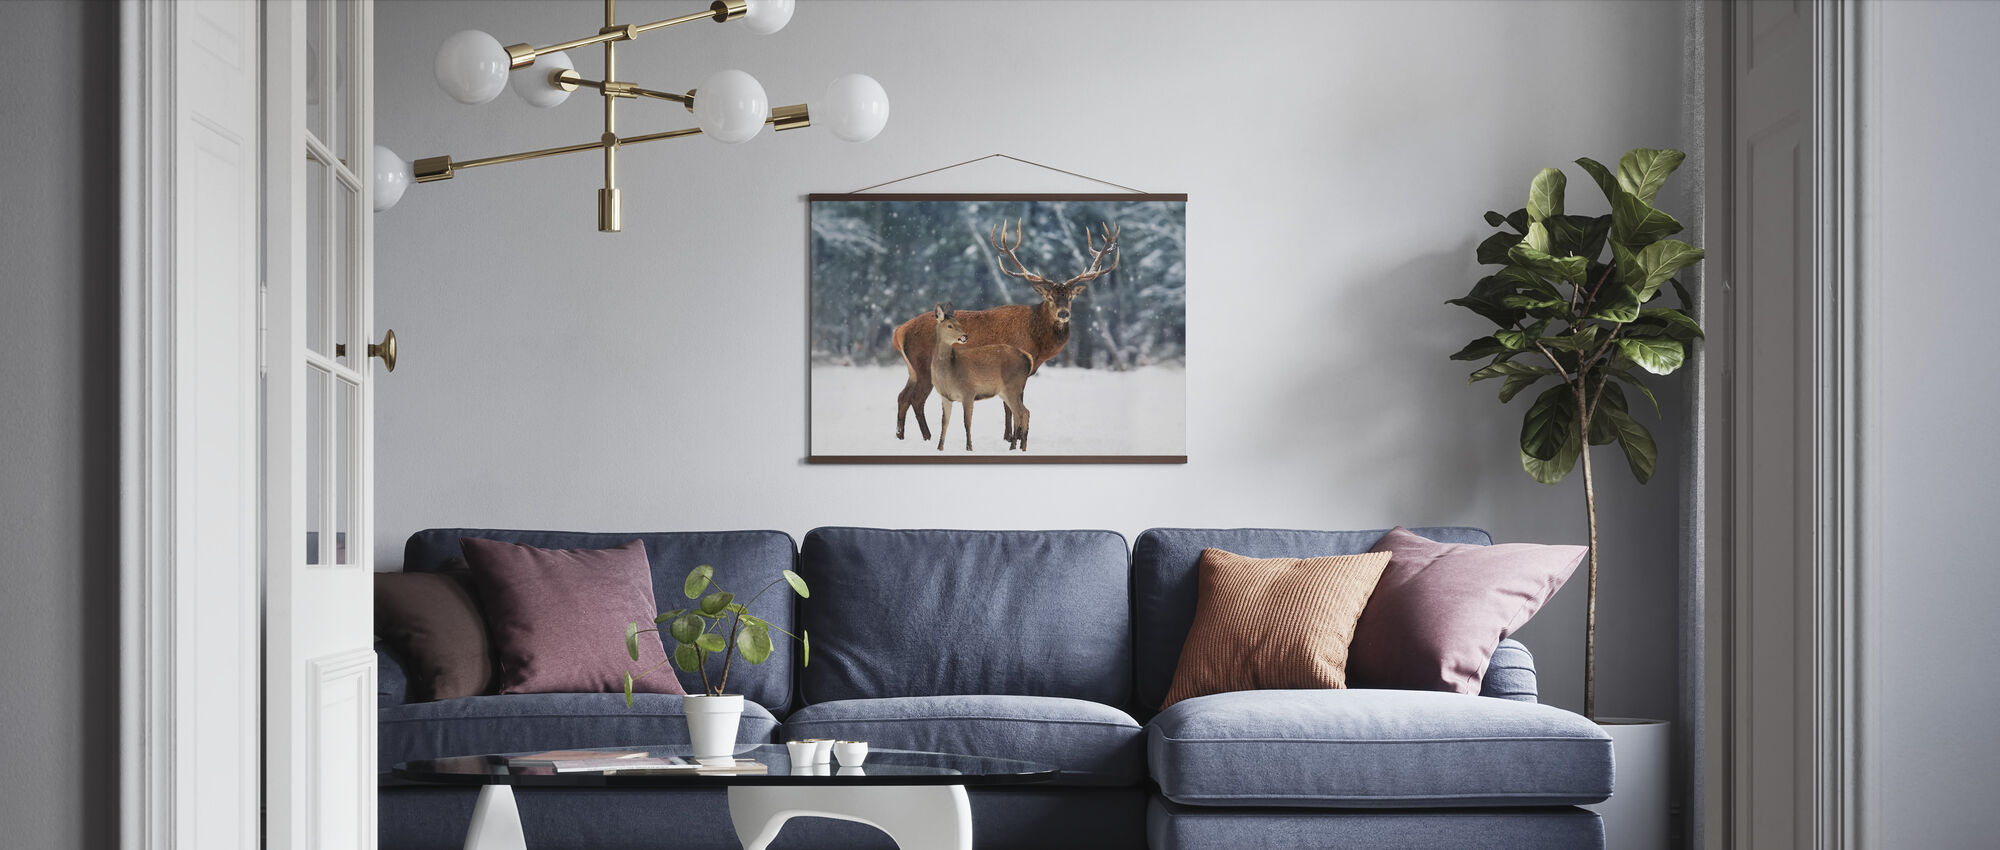 Deer in the Snow - Poster - Living Room